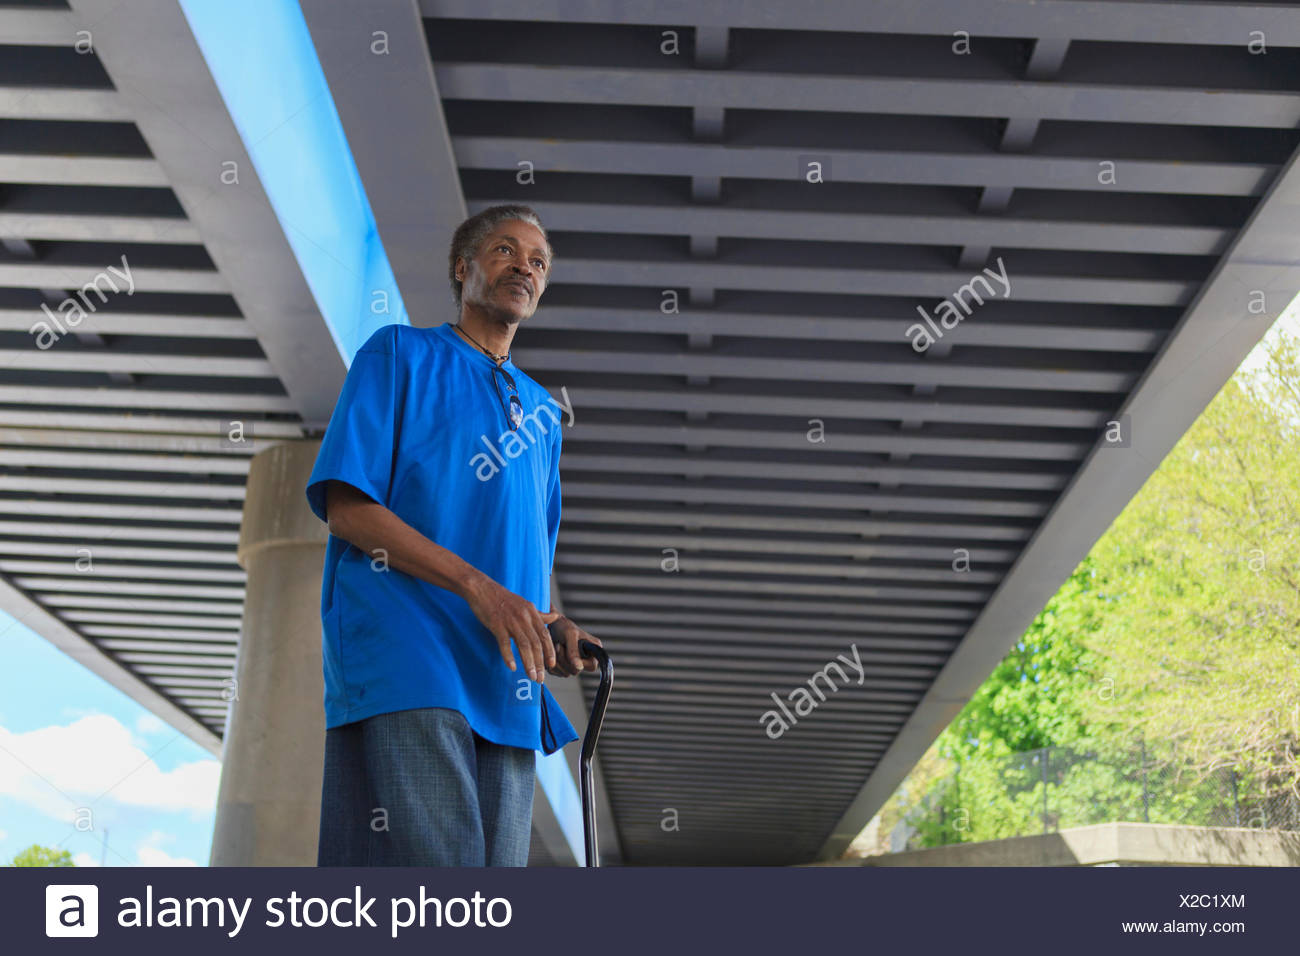 Man with Traumatic Brain Injury taking a walk in his neighborhood - Stock Image